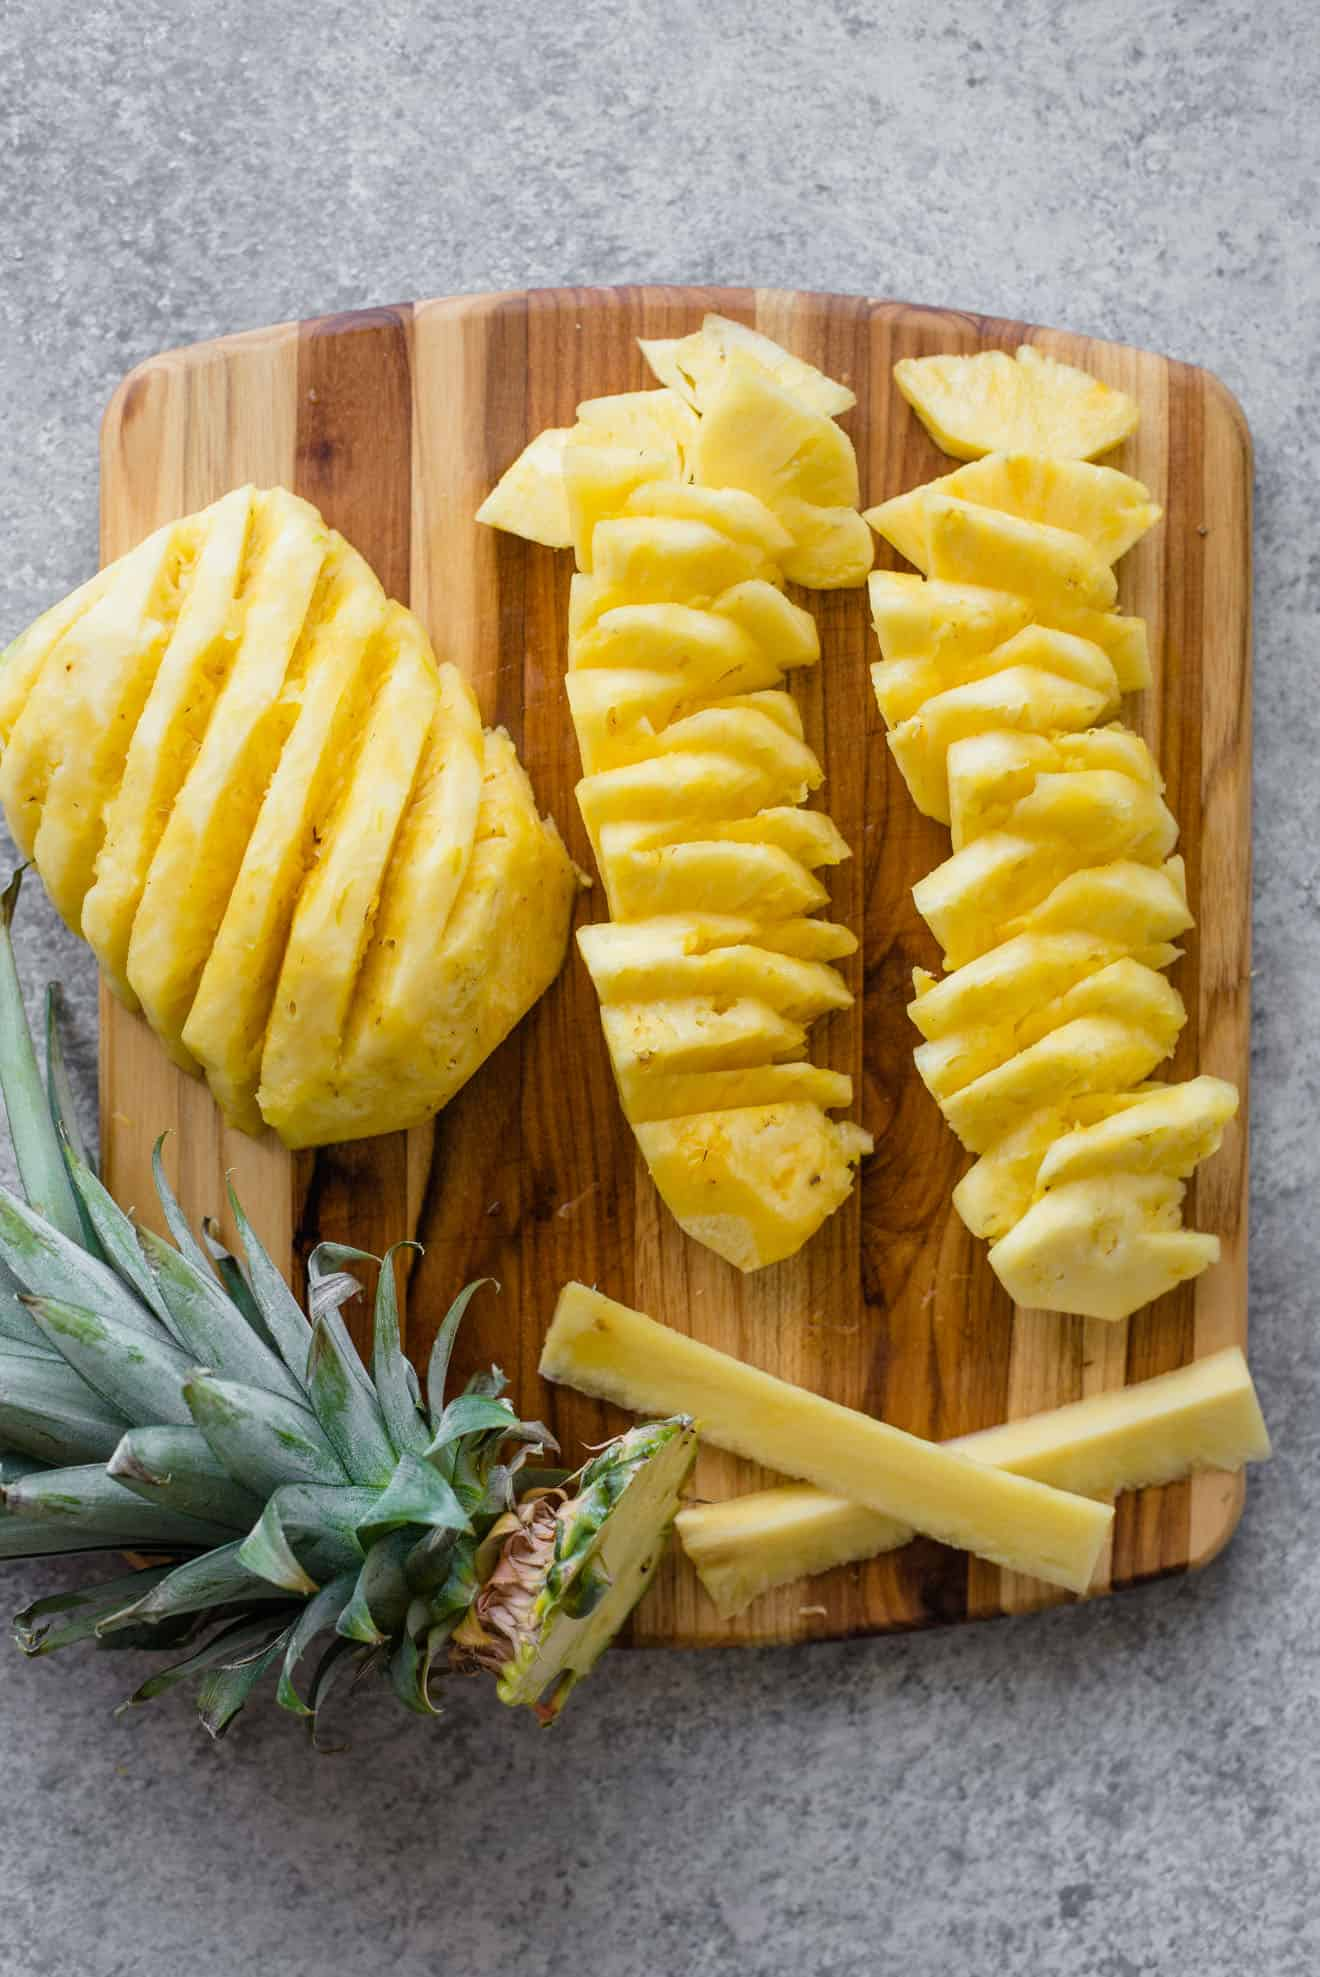 Image result for pineapple cut and core